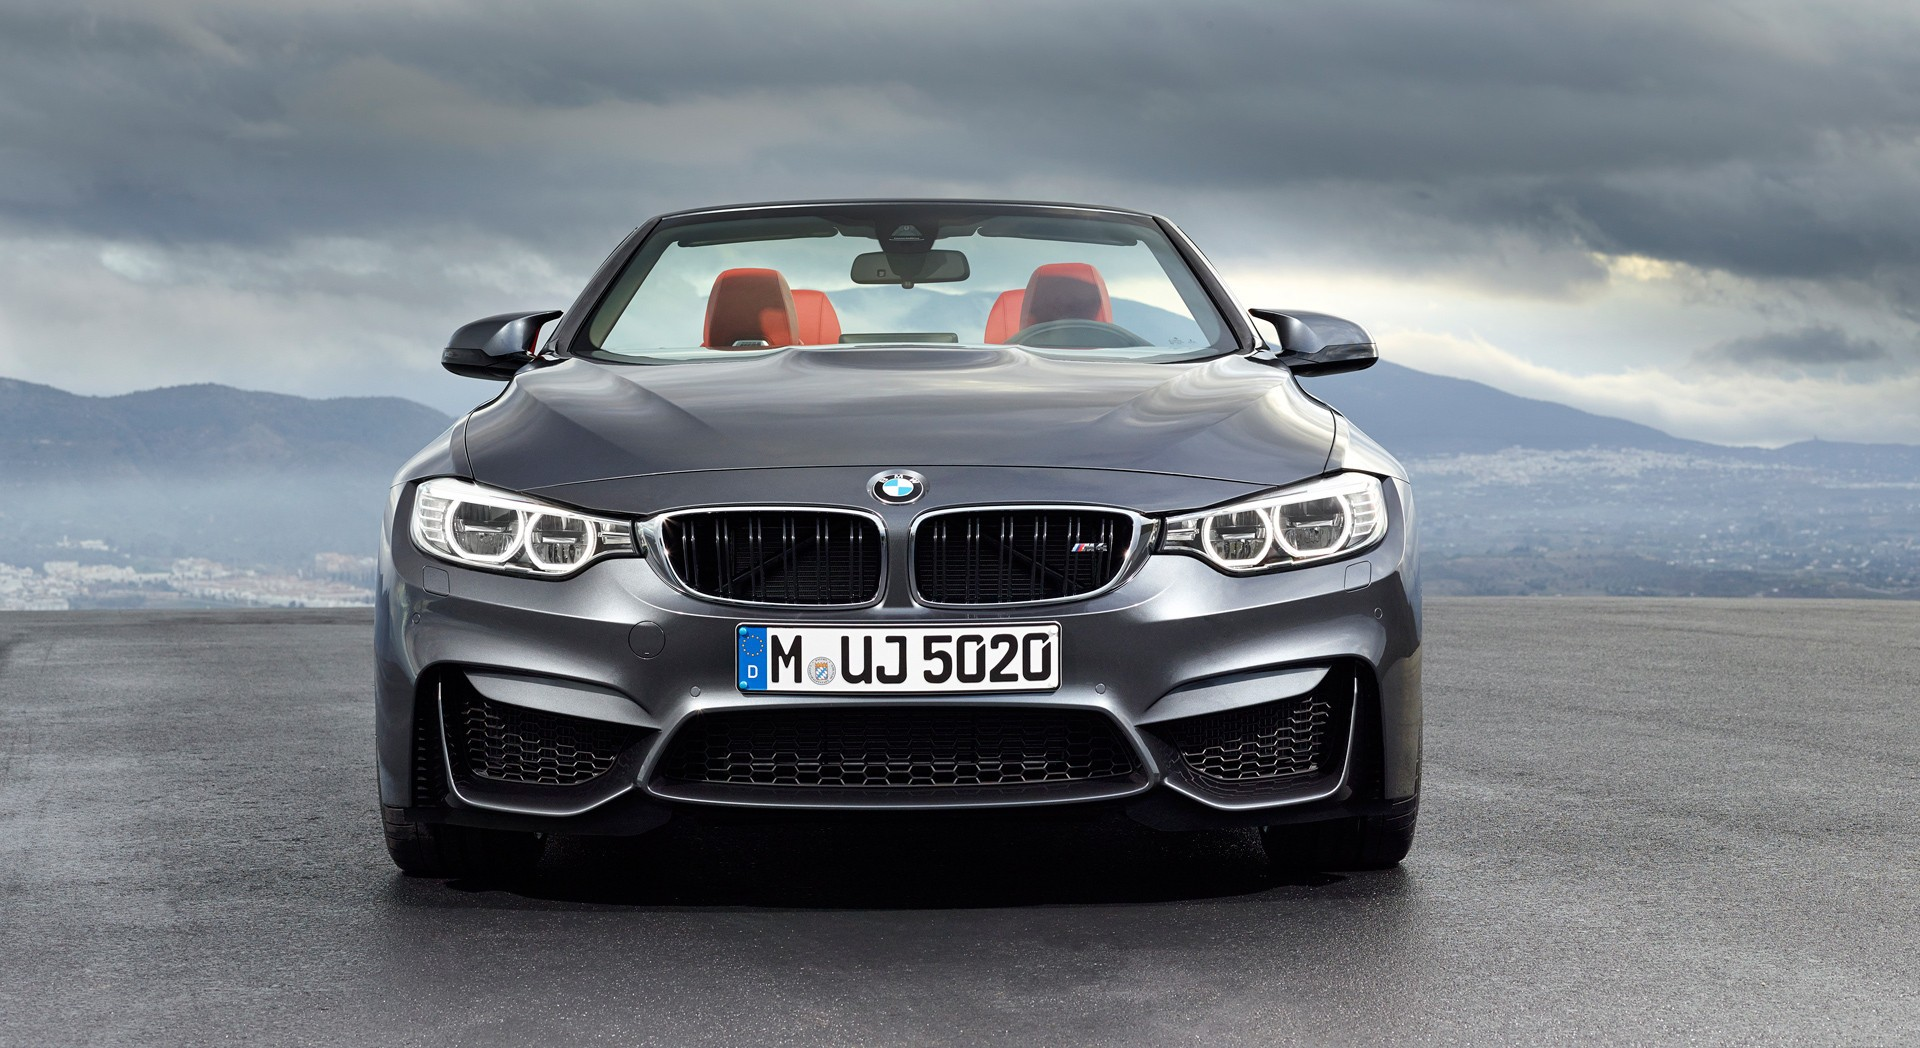 bmw m4 cabrio front hd desktop wallpapers 4k hd. Black Bedroom Furniture Sets. Home Design Ideas